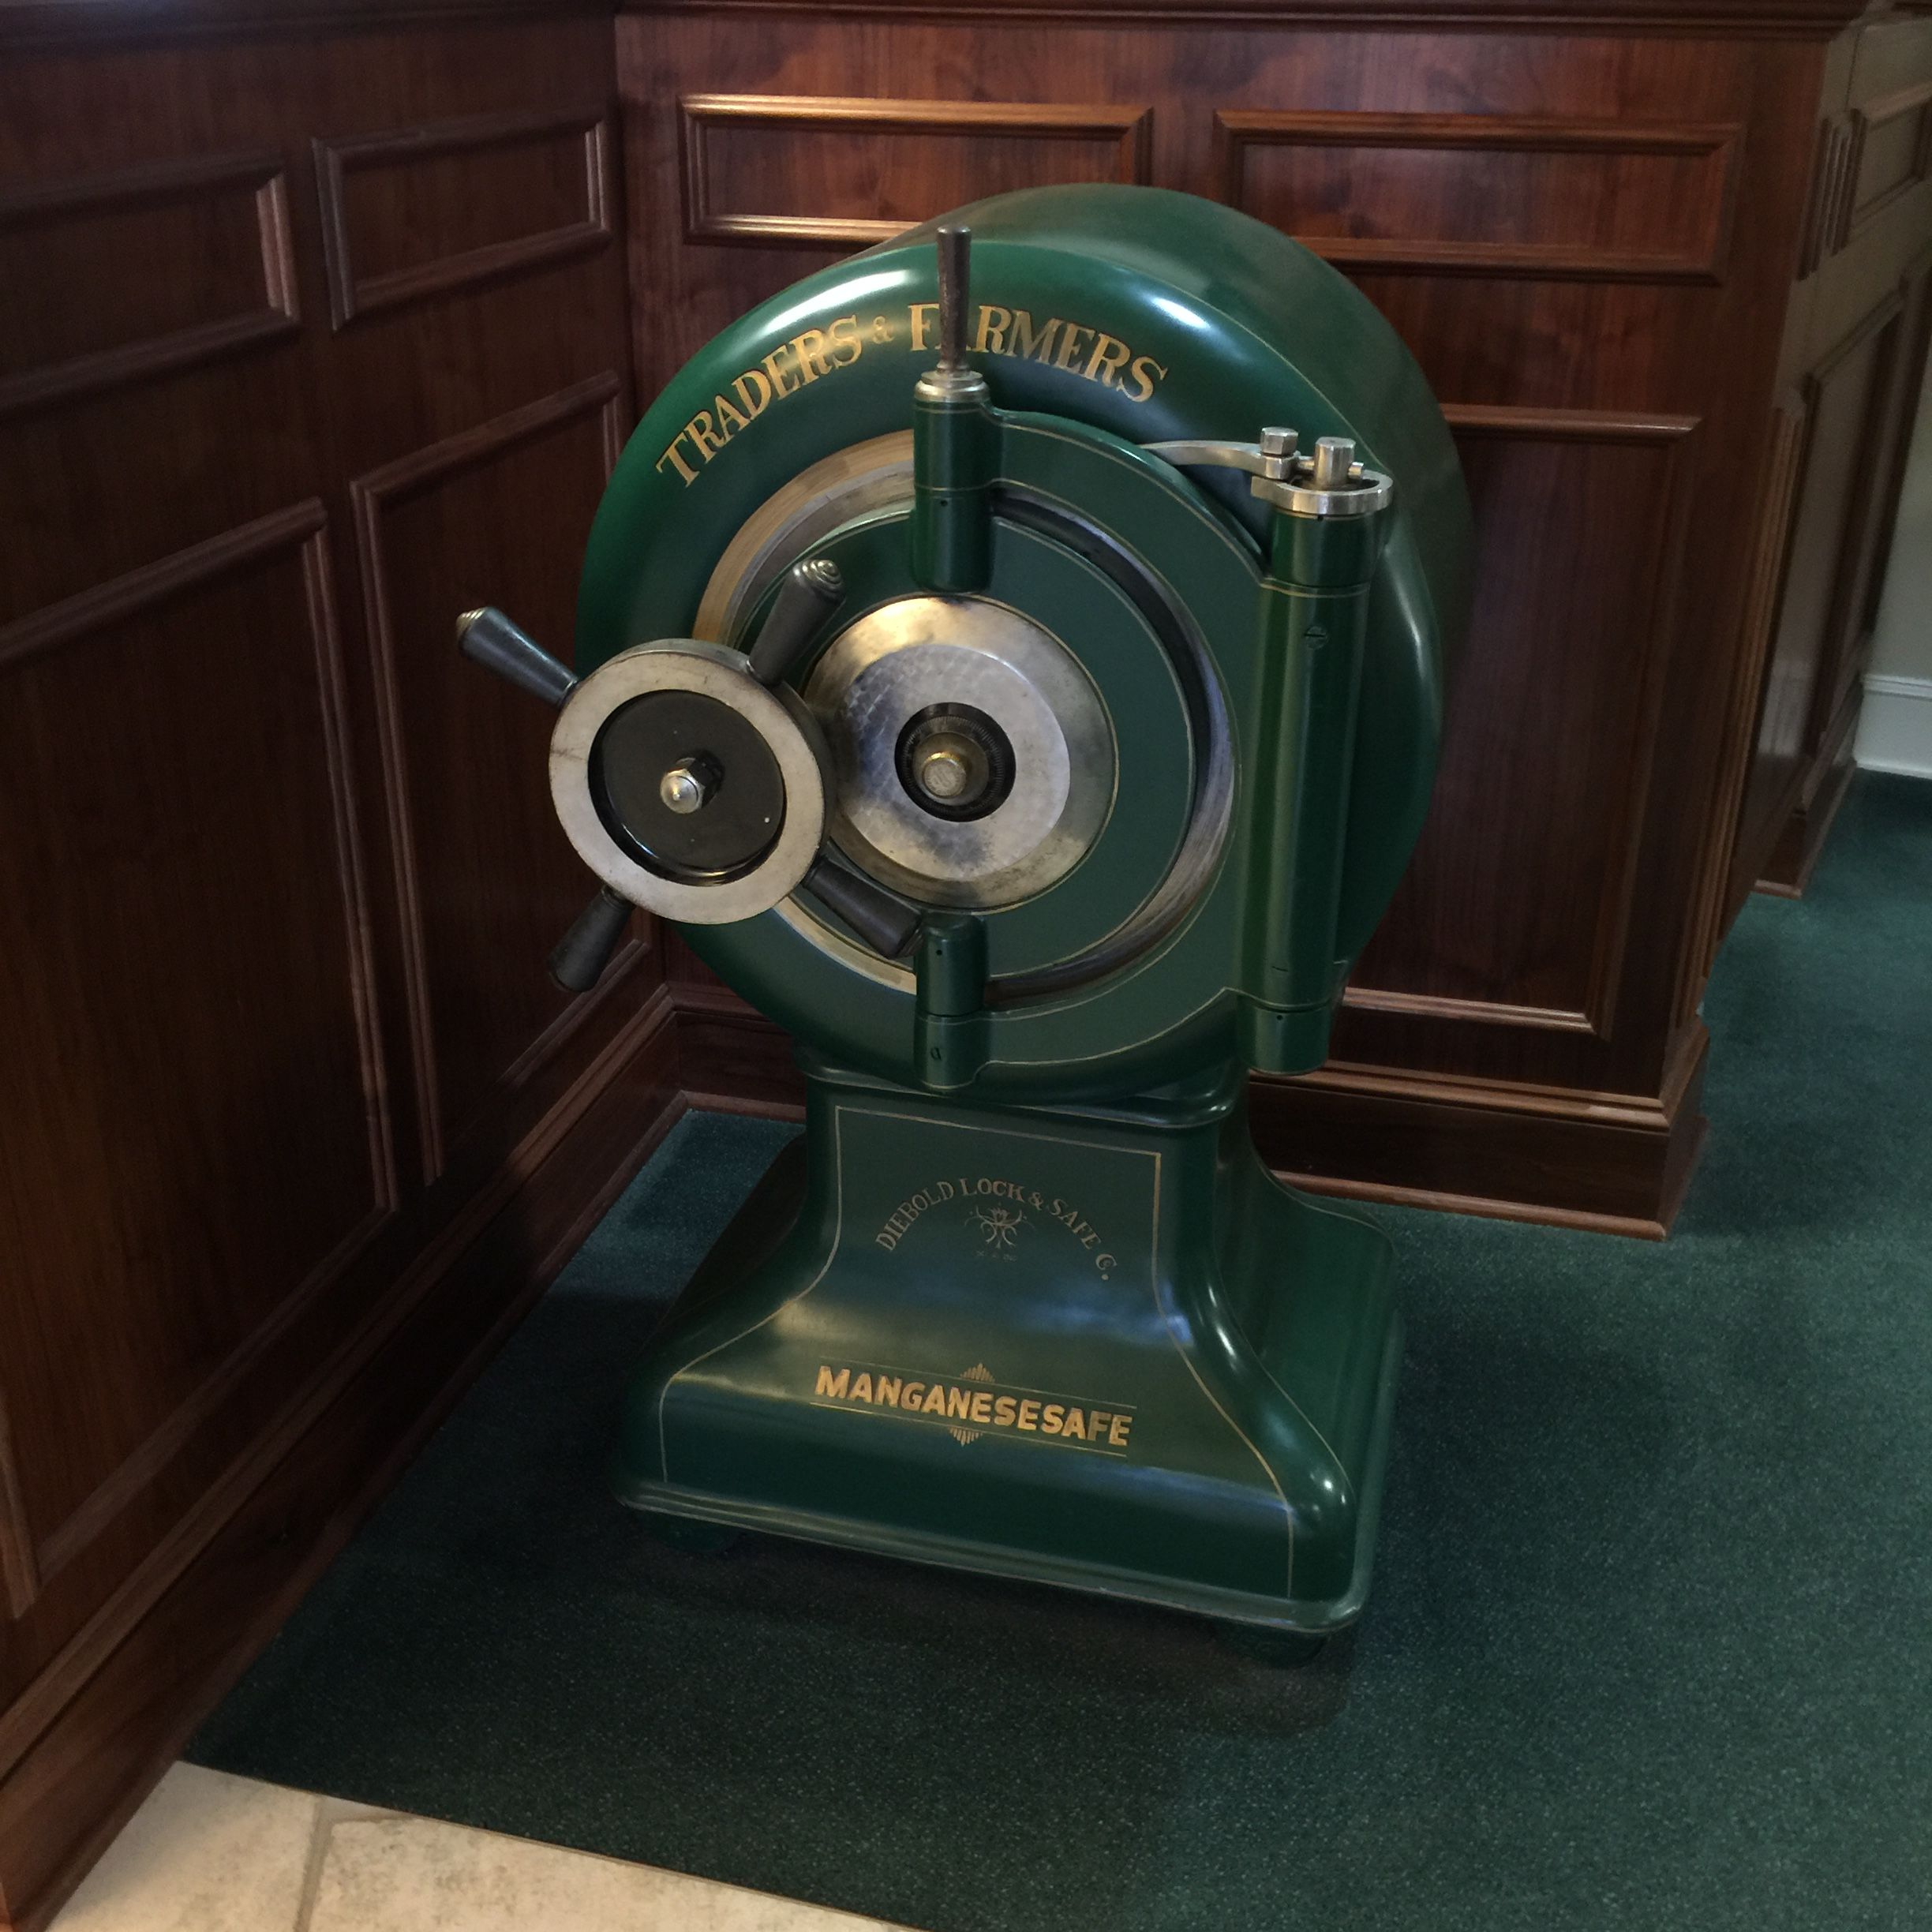 Diebold safe at Traders and Farmers Bank, Haleyville Alabama